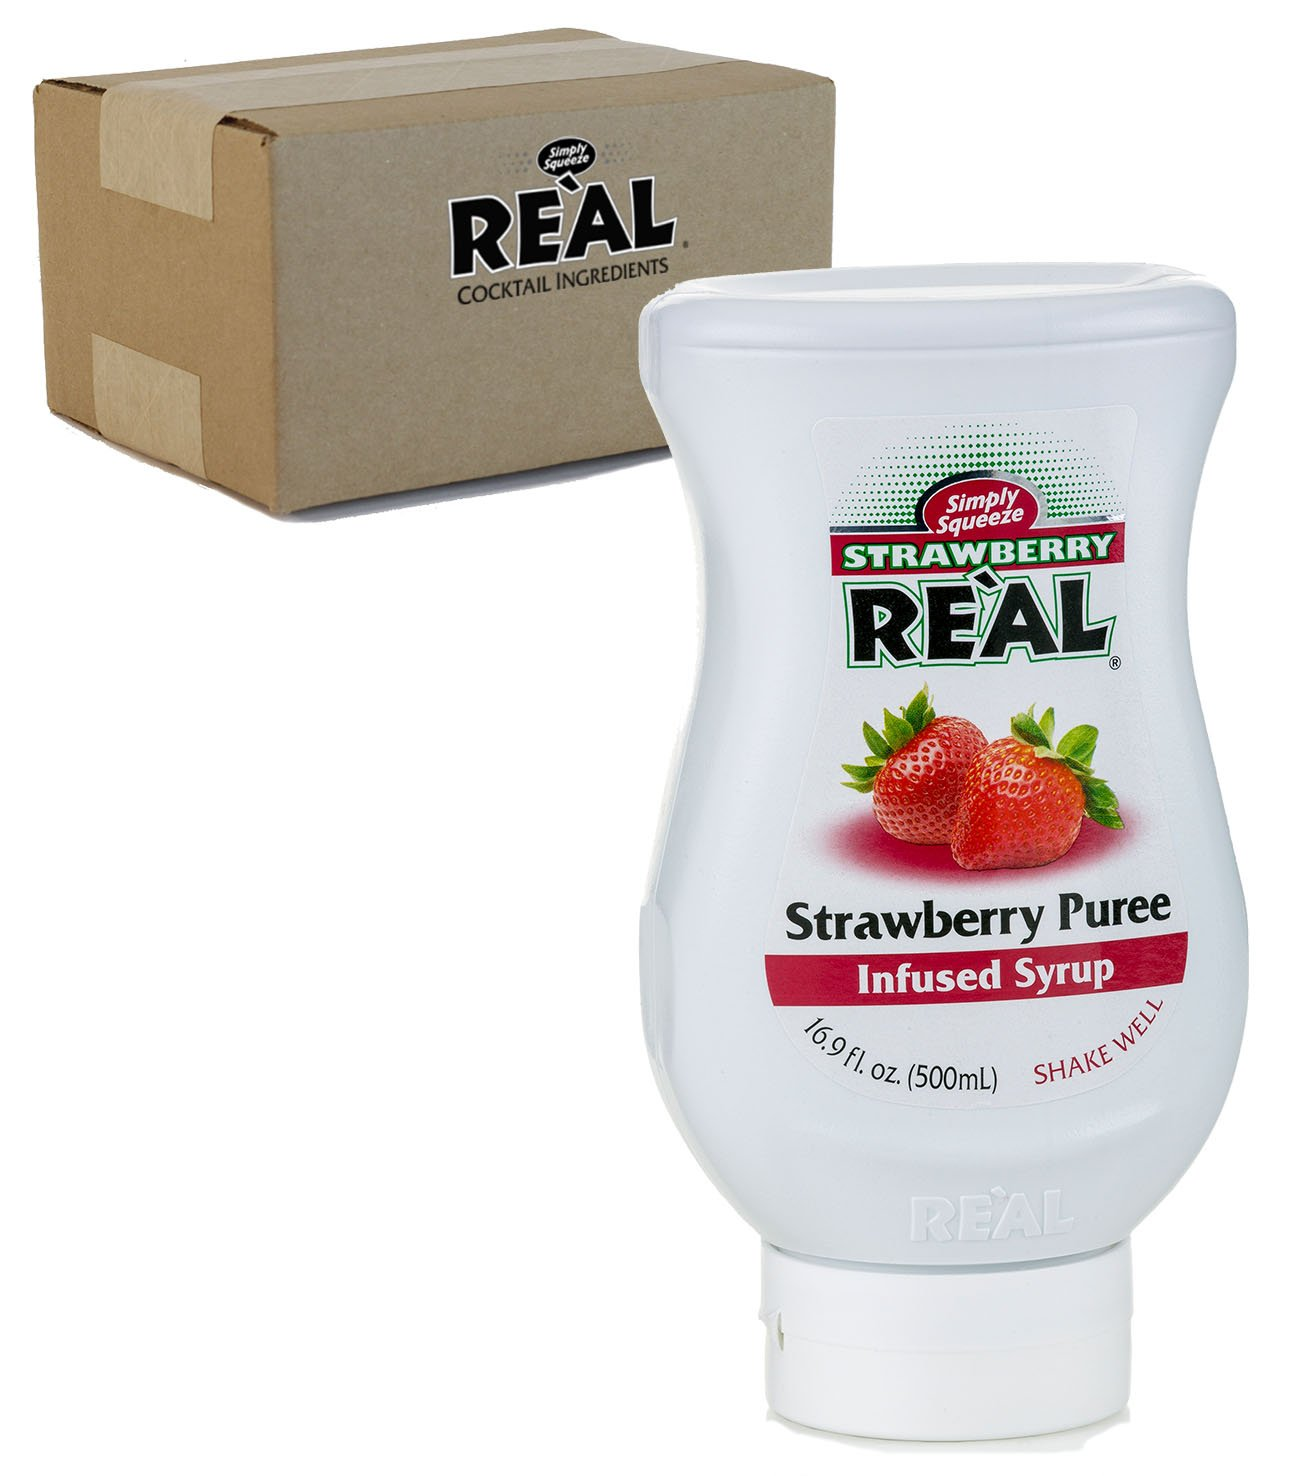 Strawberry Reàl, Strawberry Puree Infused Syrup, 16.9 FL OZ Squeezable Bottle (Pack of 1)